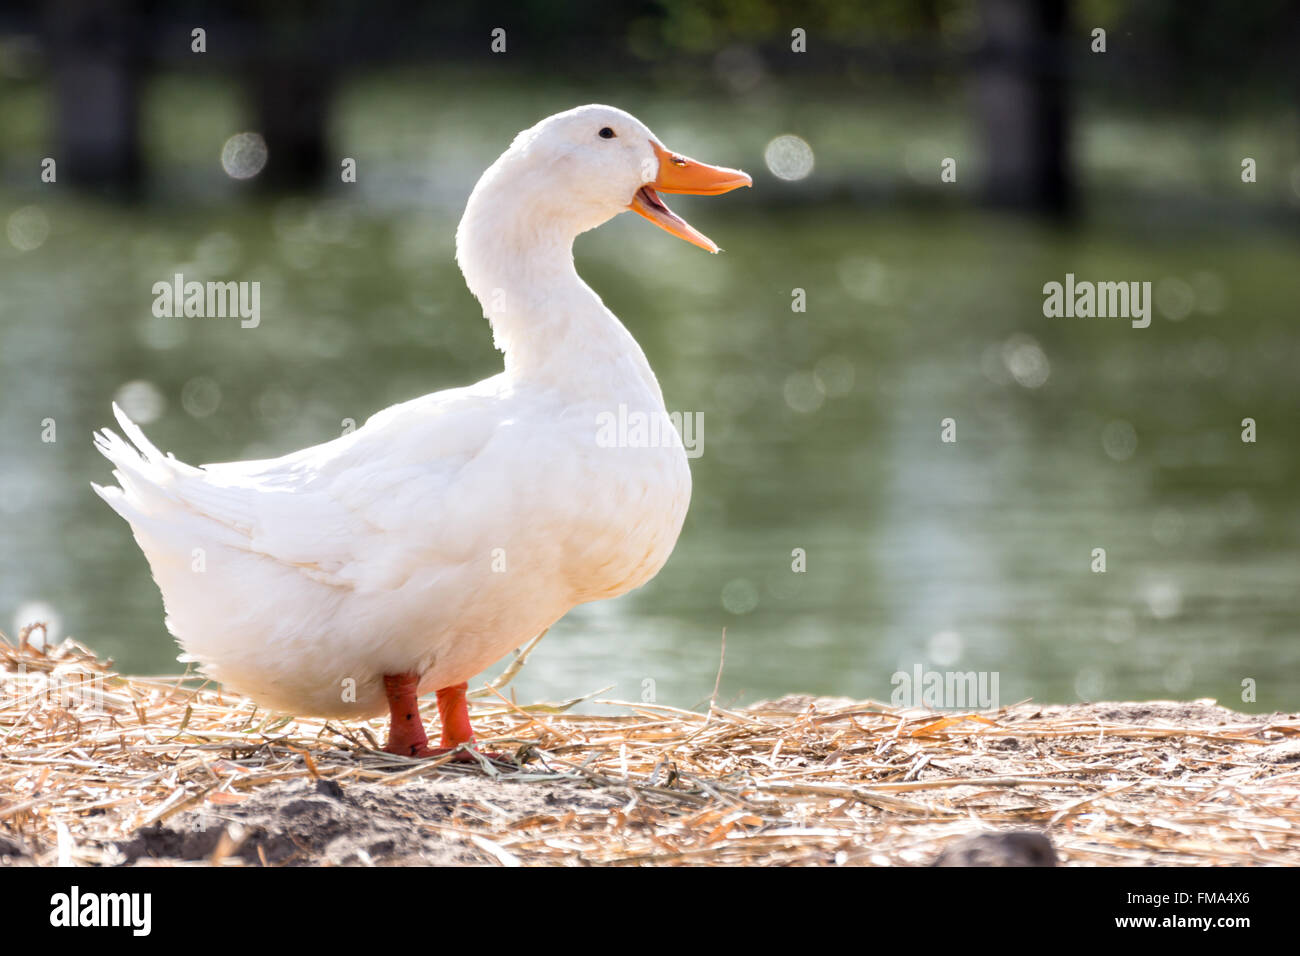 White duck stand next to a pond or lake with bokeh background, animal life and agriculture concept picture. - Stock Image